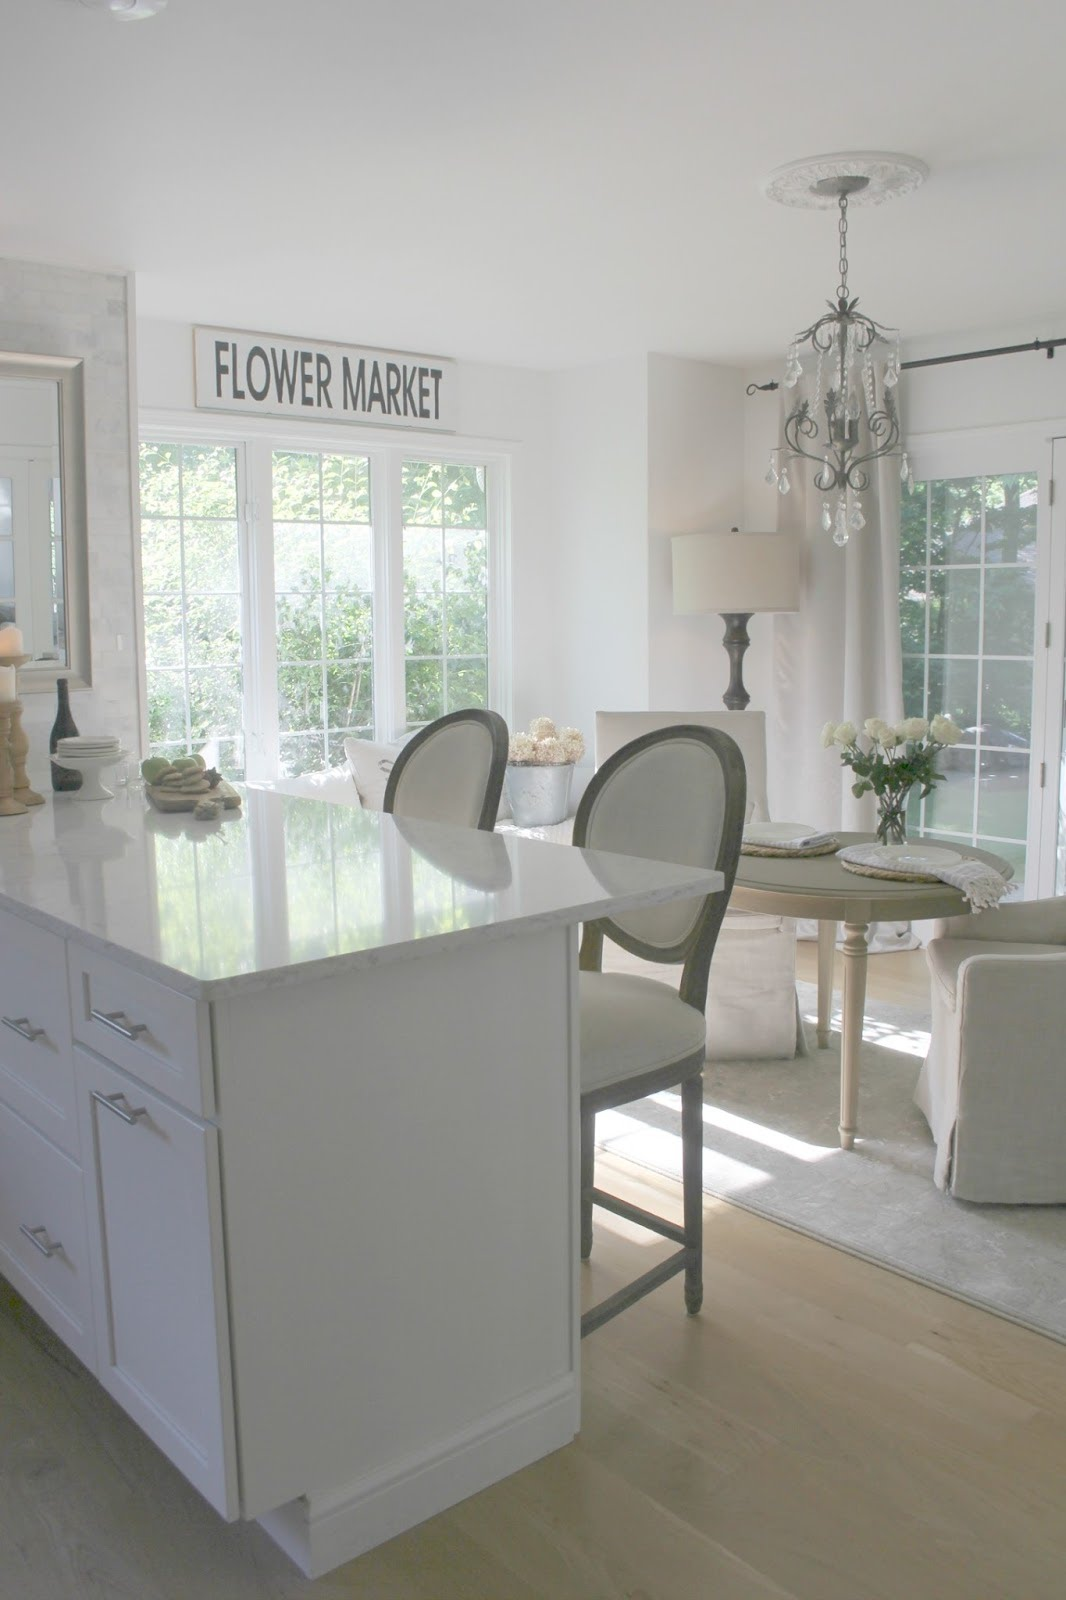 My serene whit ekitchen with modern farmhouse, classic, and French country style. Vintage Flower Market sign from Urban Farmgirl. Viatera quartz (Minuet) countertops and Louis linen upholstered bar stools. Round breakfast table and two linen slipcovered arm chairs. #hellolovelystudio #kitchendecor #serene #timeless #tranquildecor #frenchcountry #modernfarmhouse #whitekitchen